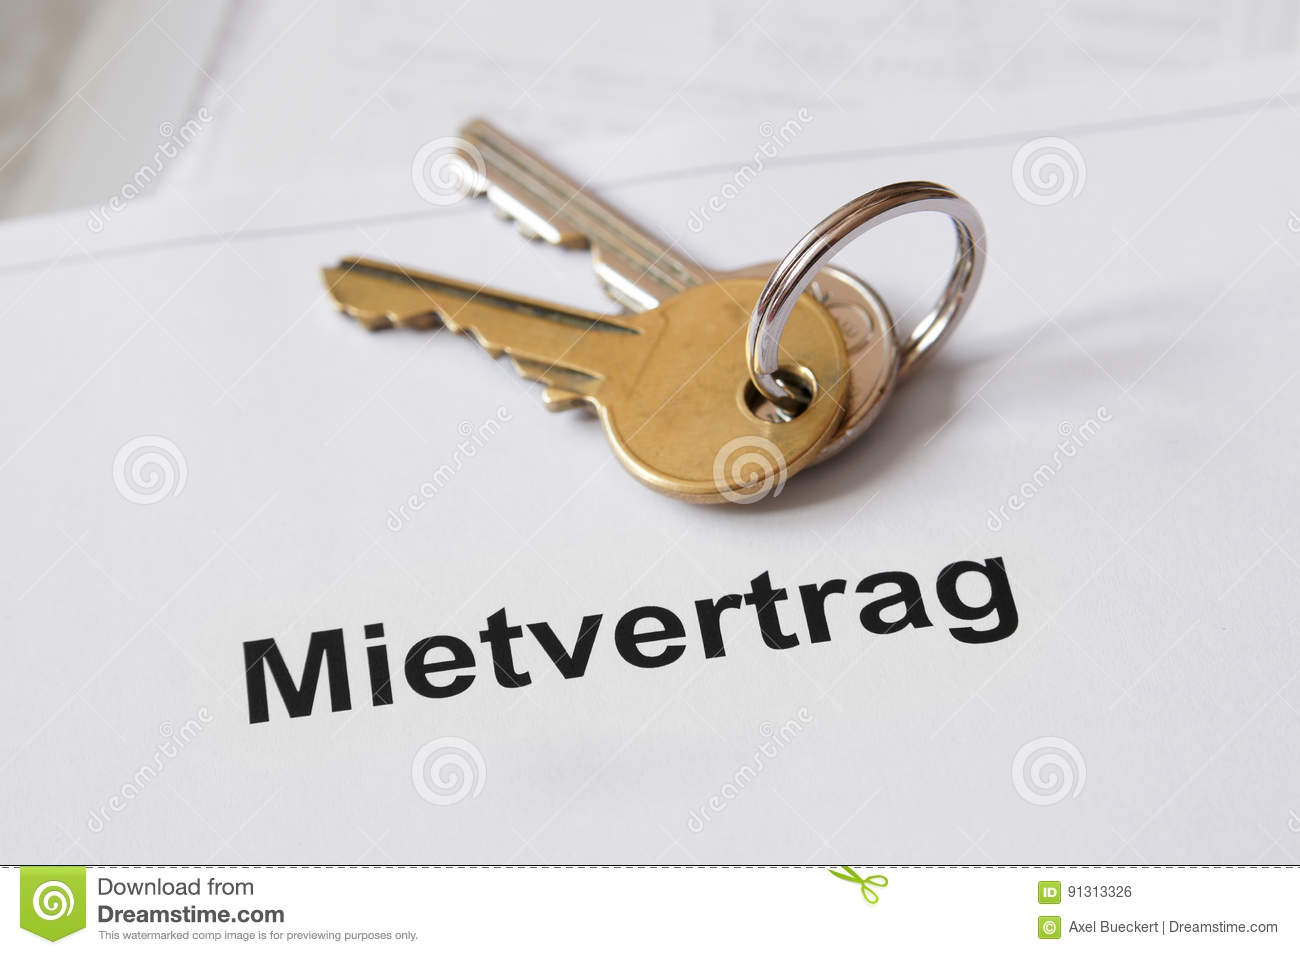 Mietvertrag German Lease Agreement Stock Photo Image Of Office